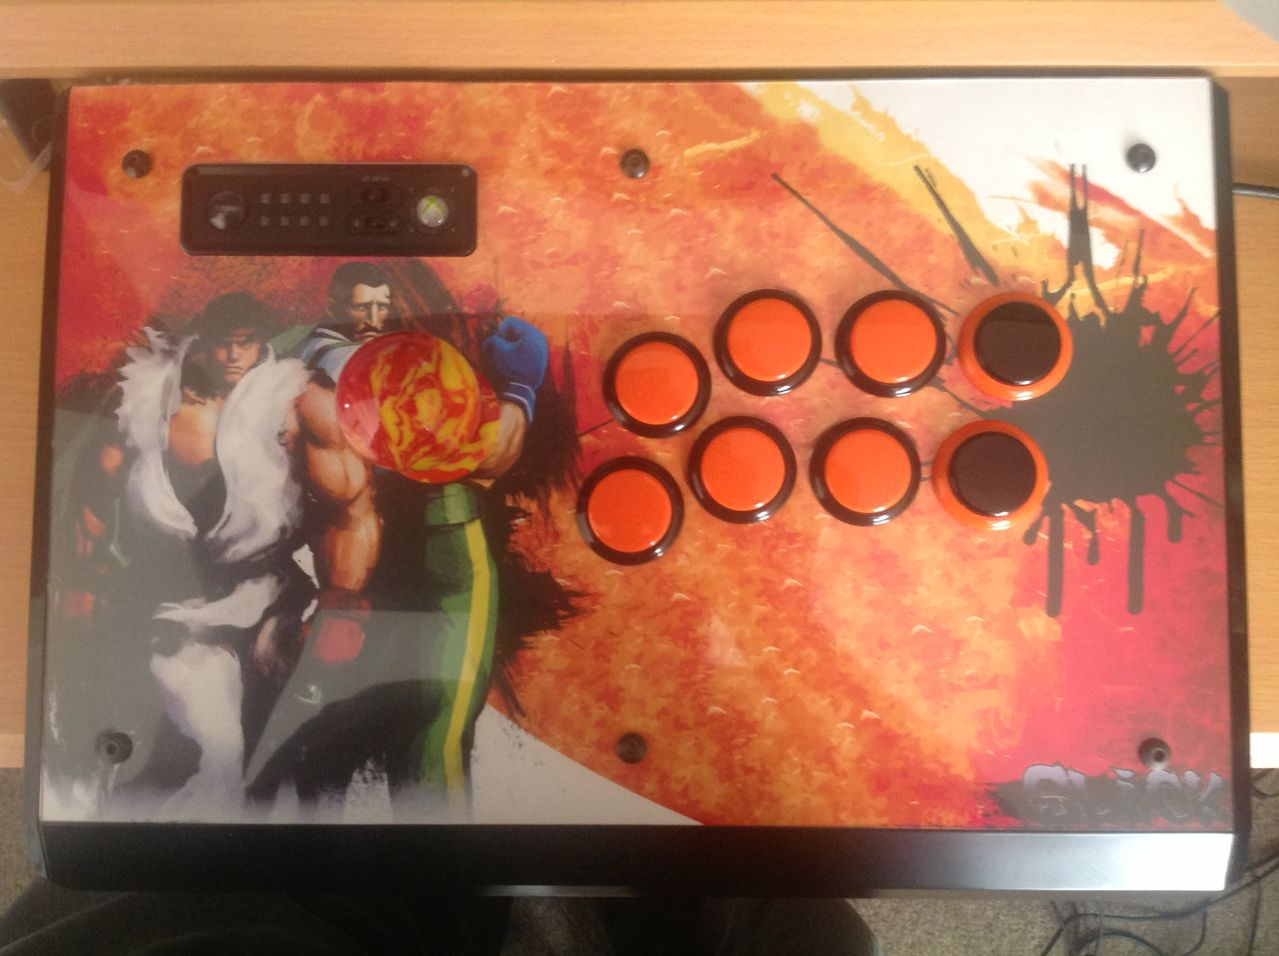 Show us your stick Image